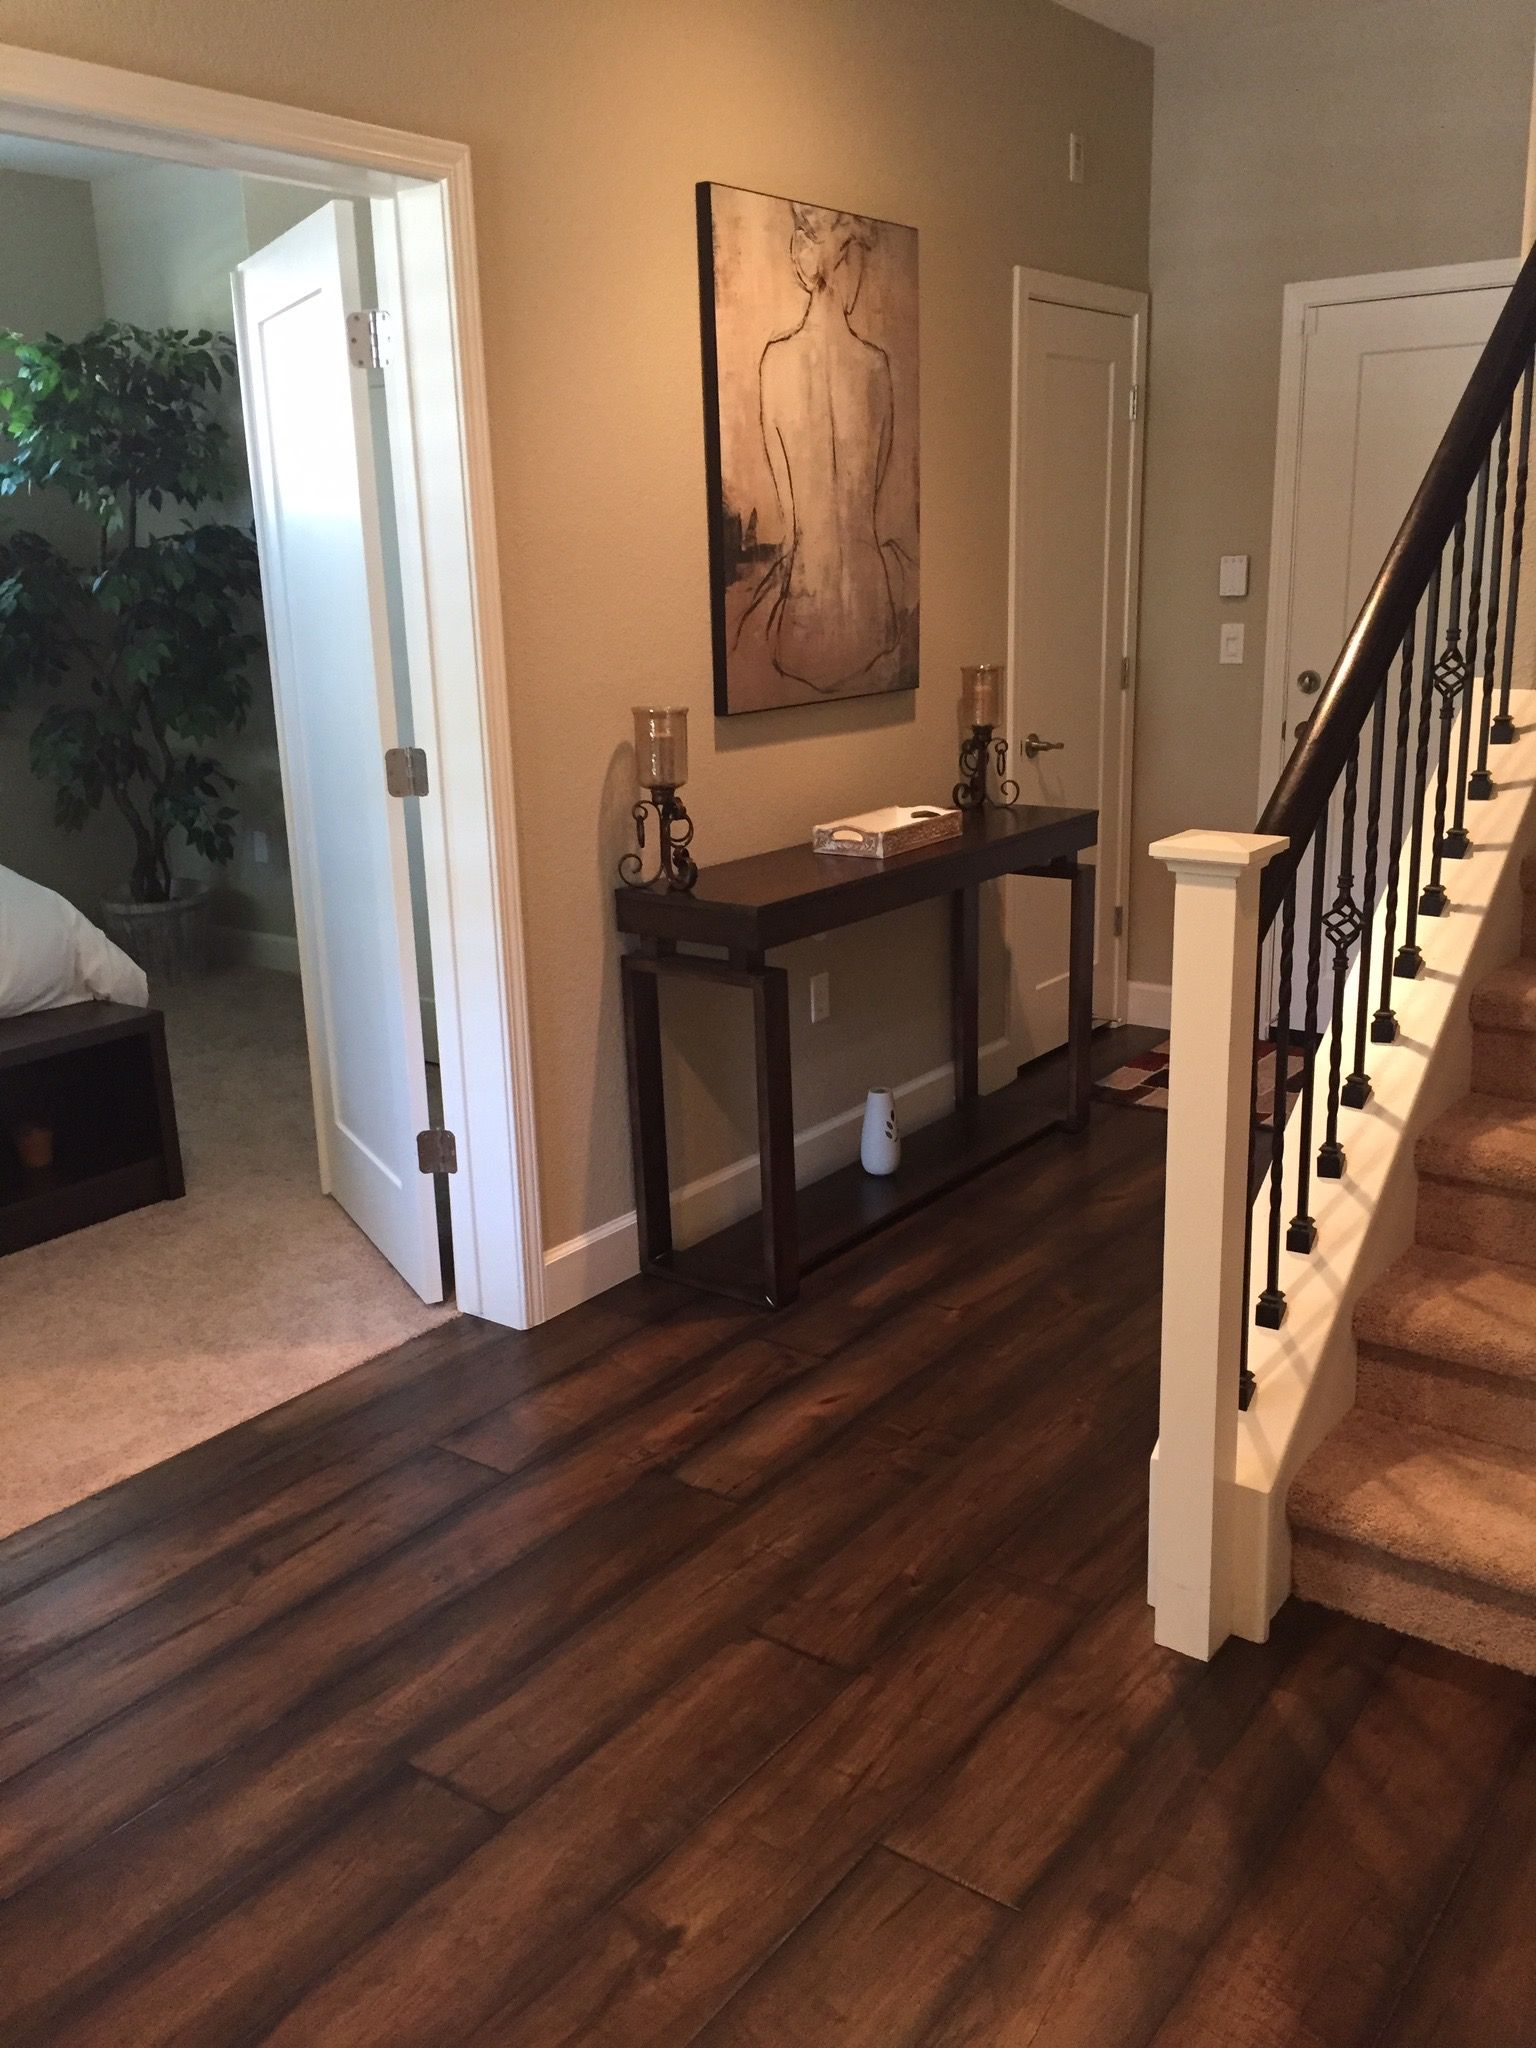 Johnson Ale House Engineered Hardwood Installed By Precision Flooring Contact Us Today For Your Flooring Needs Beige Room Engineered Hardwood Hardwood Floors